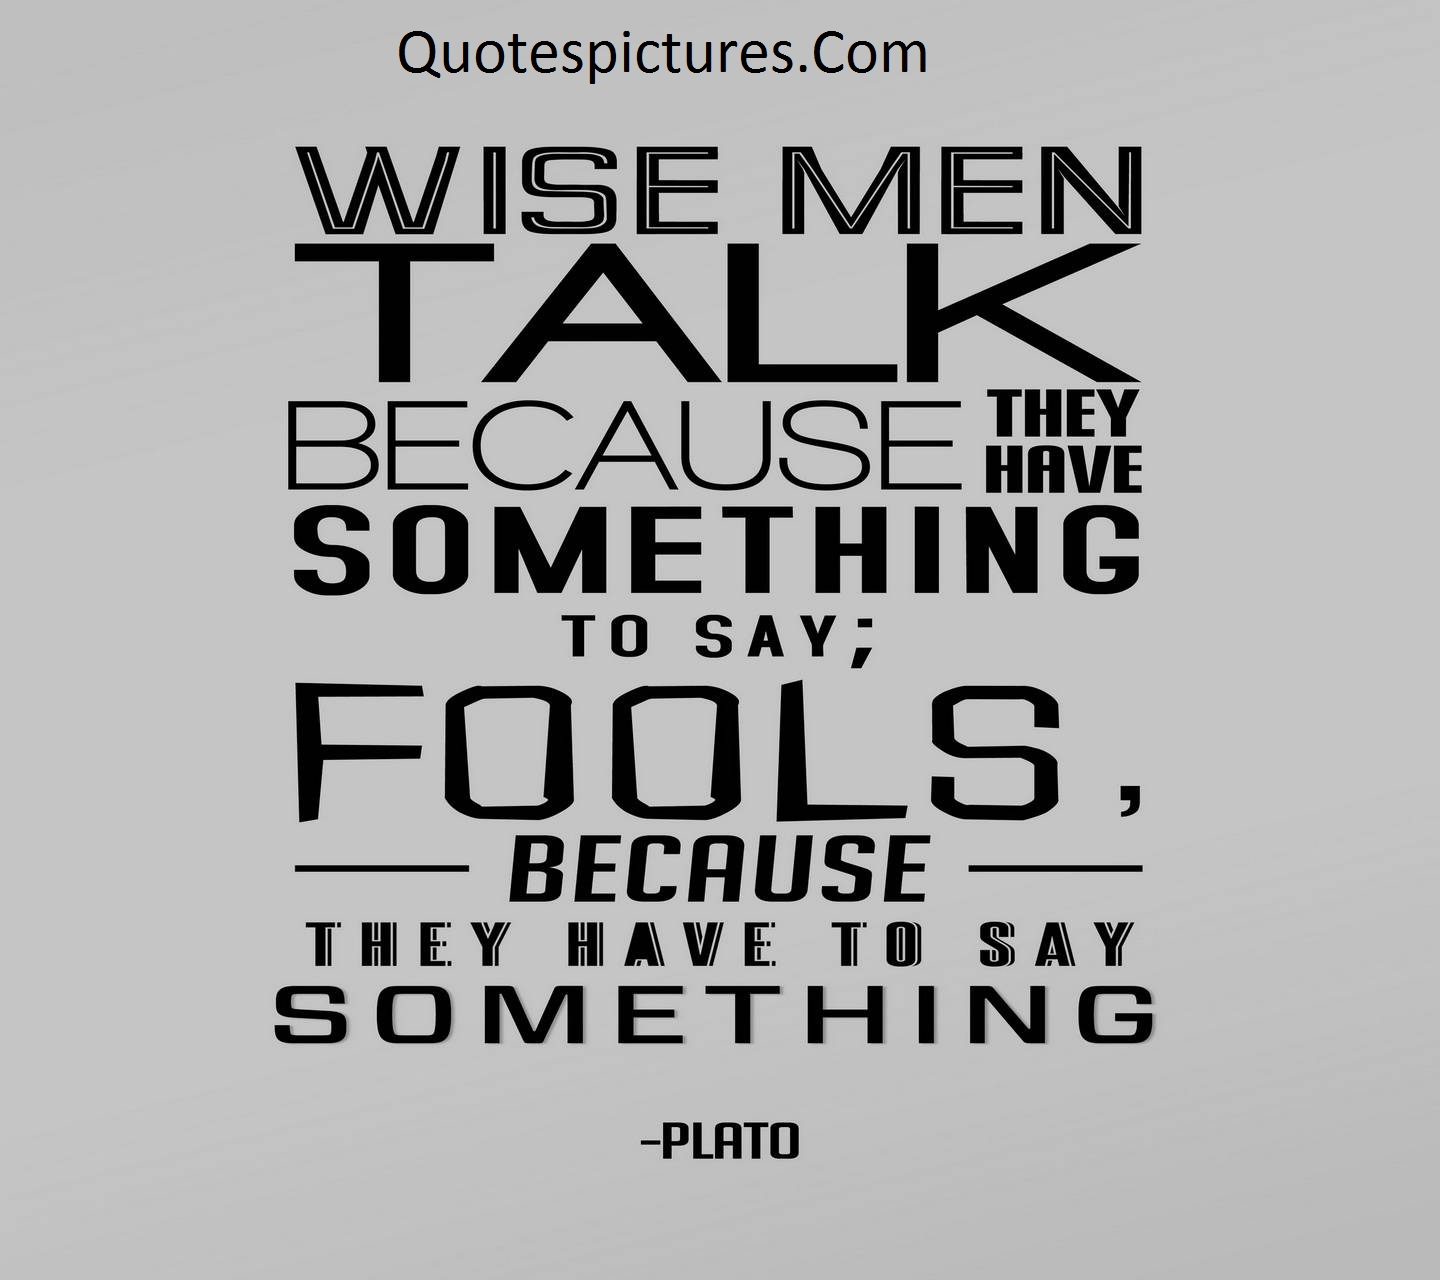 Amazing Quotes - Wise Man Talk Because They Have Something To Say Fools By Plato